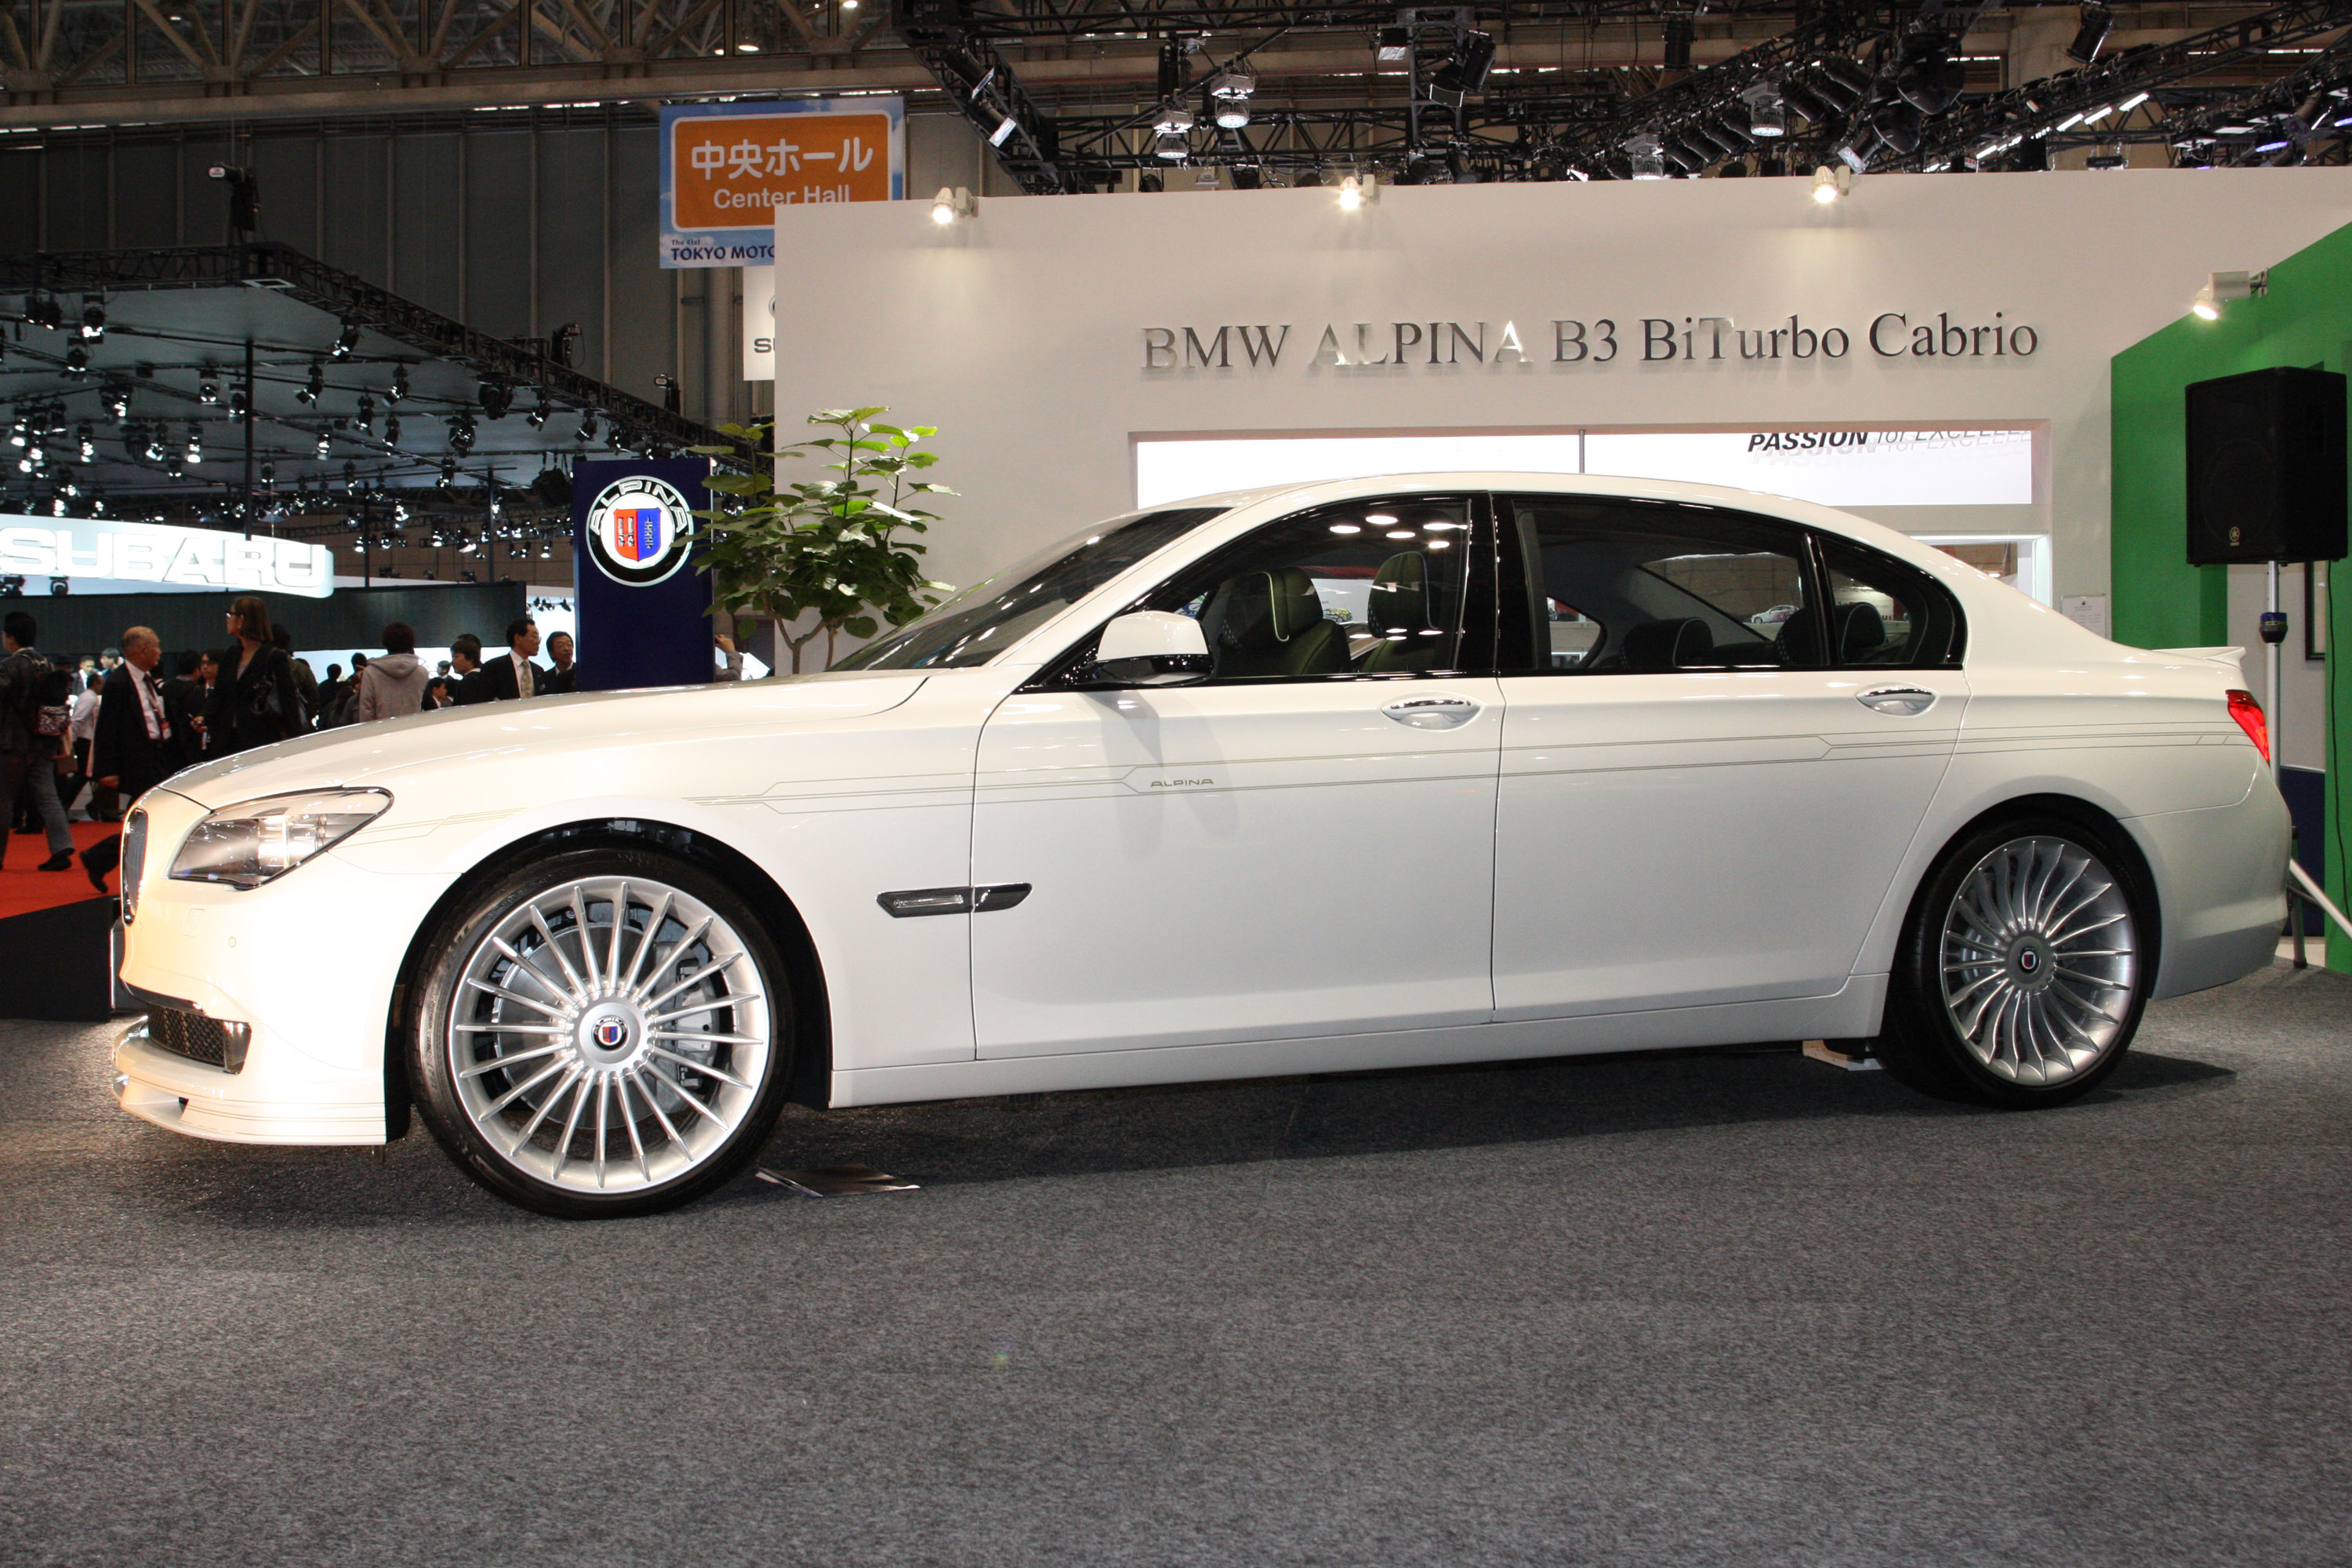 BMW b7 Alpina 2012 photo - 3